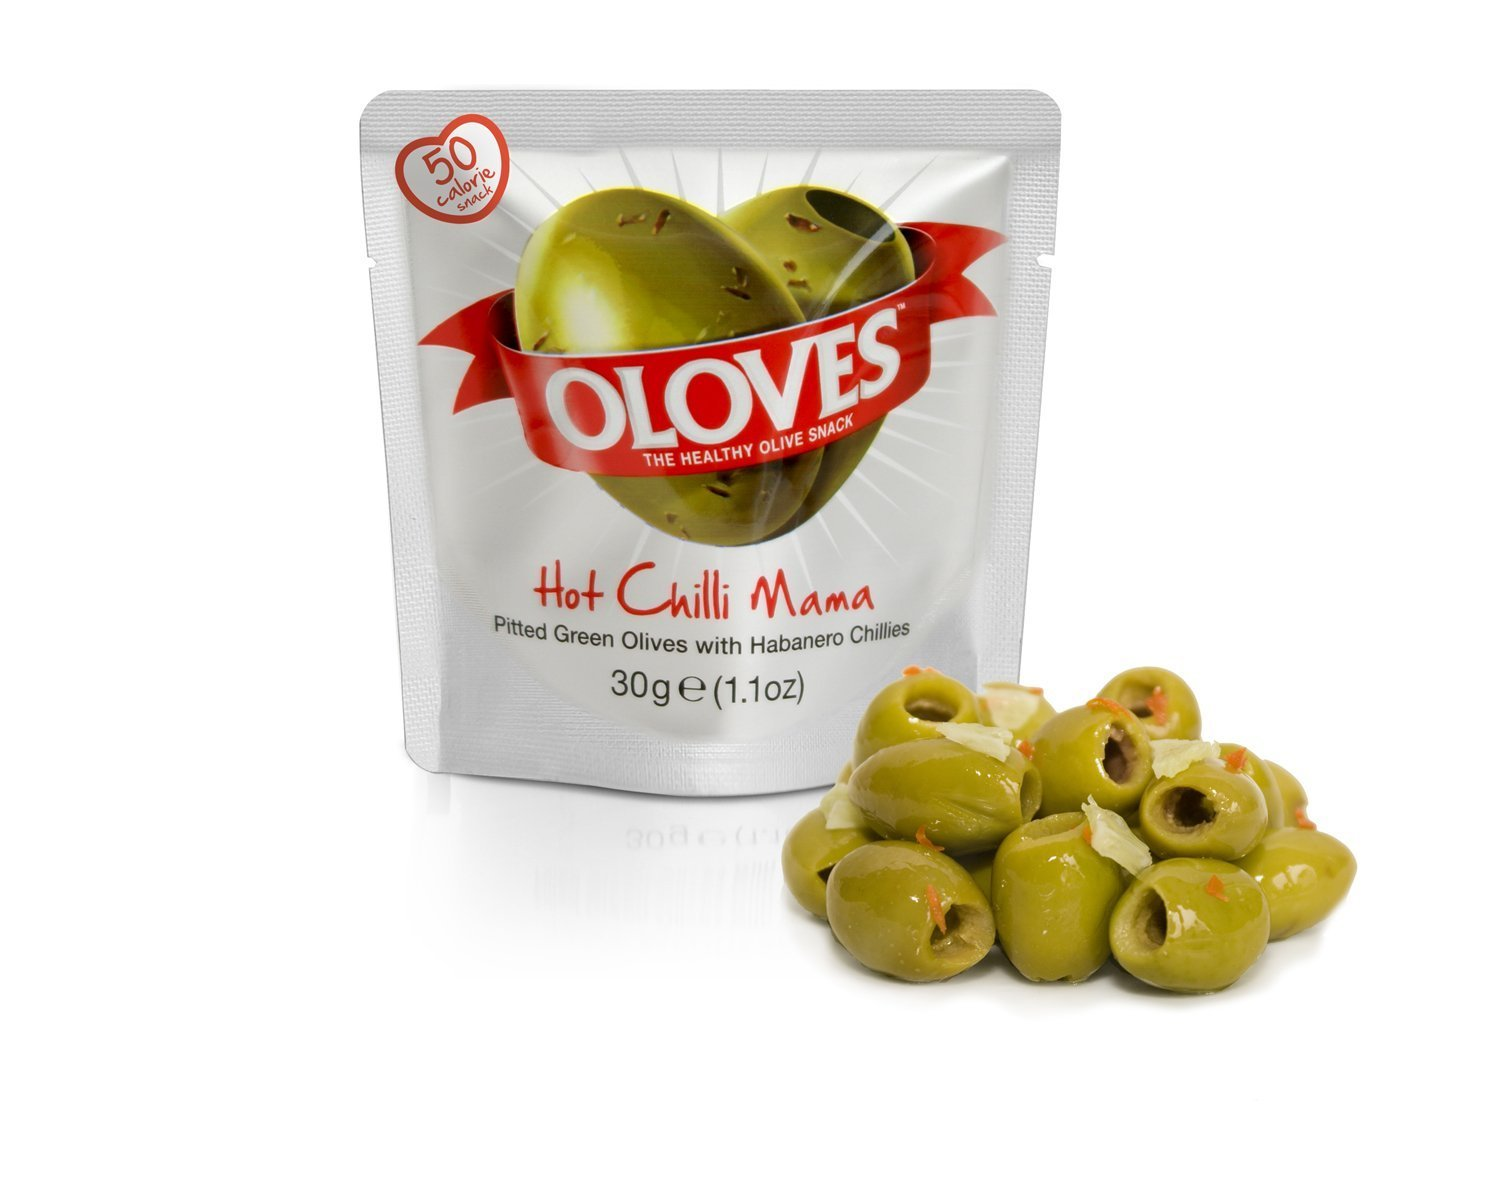 Oloves Hot chilli mama, 48 x 1.1oz, Pitted Green Olives with Habanero Chilli by Oloves